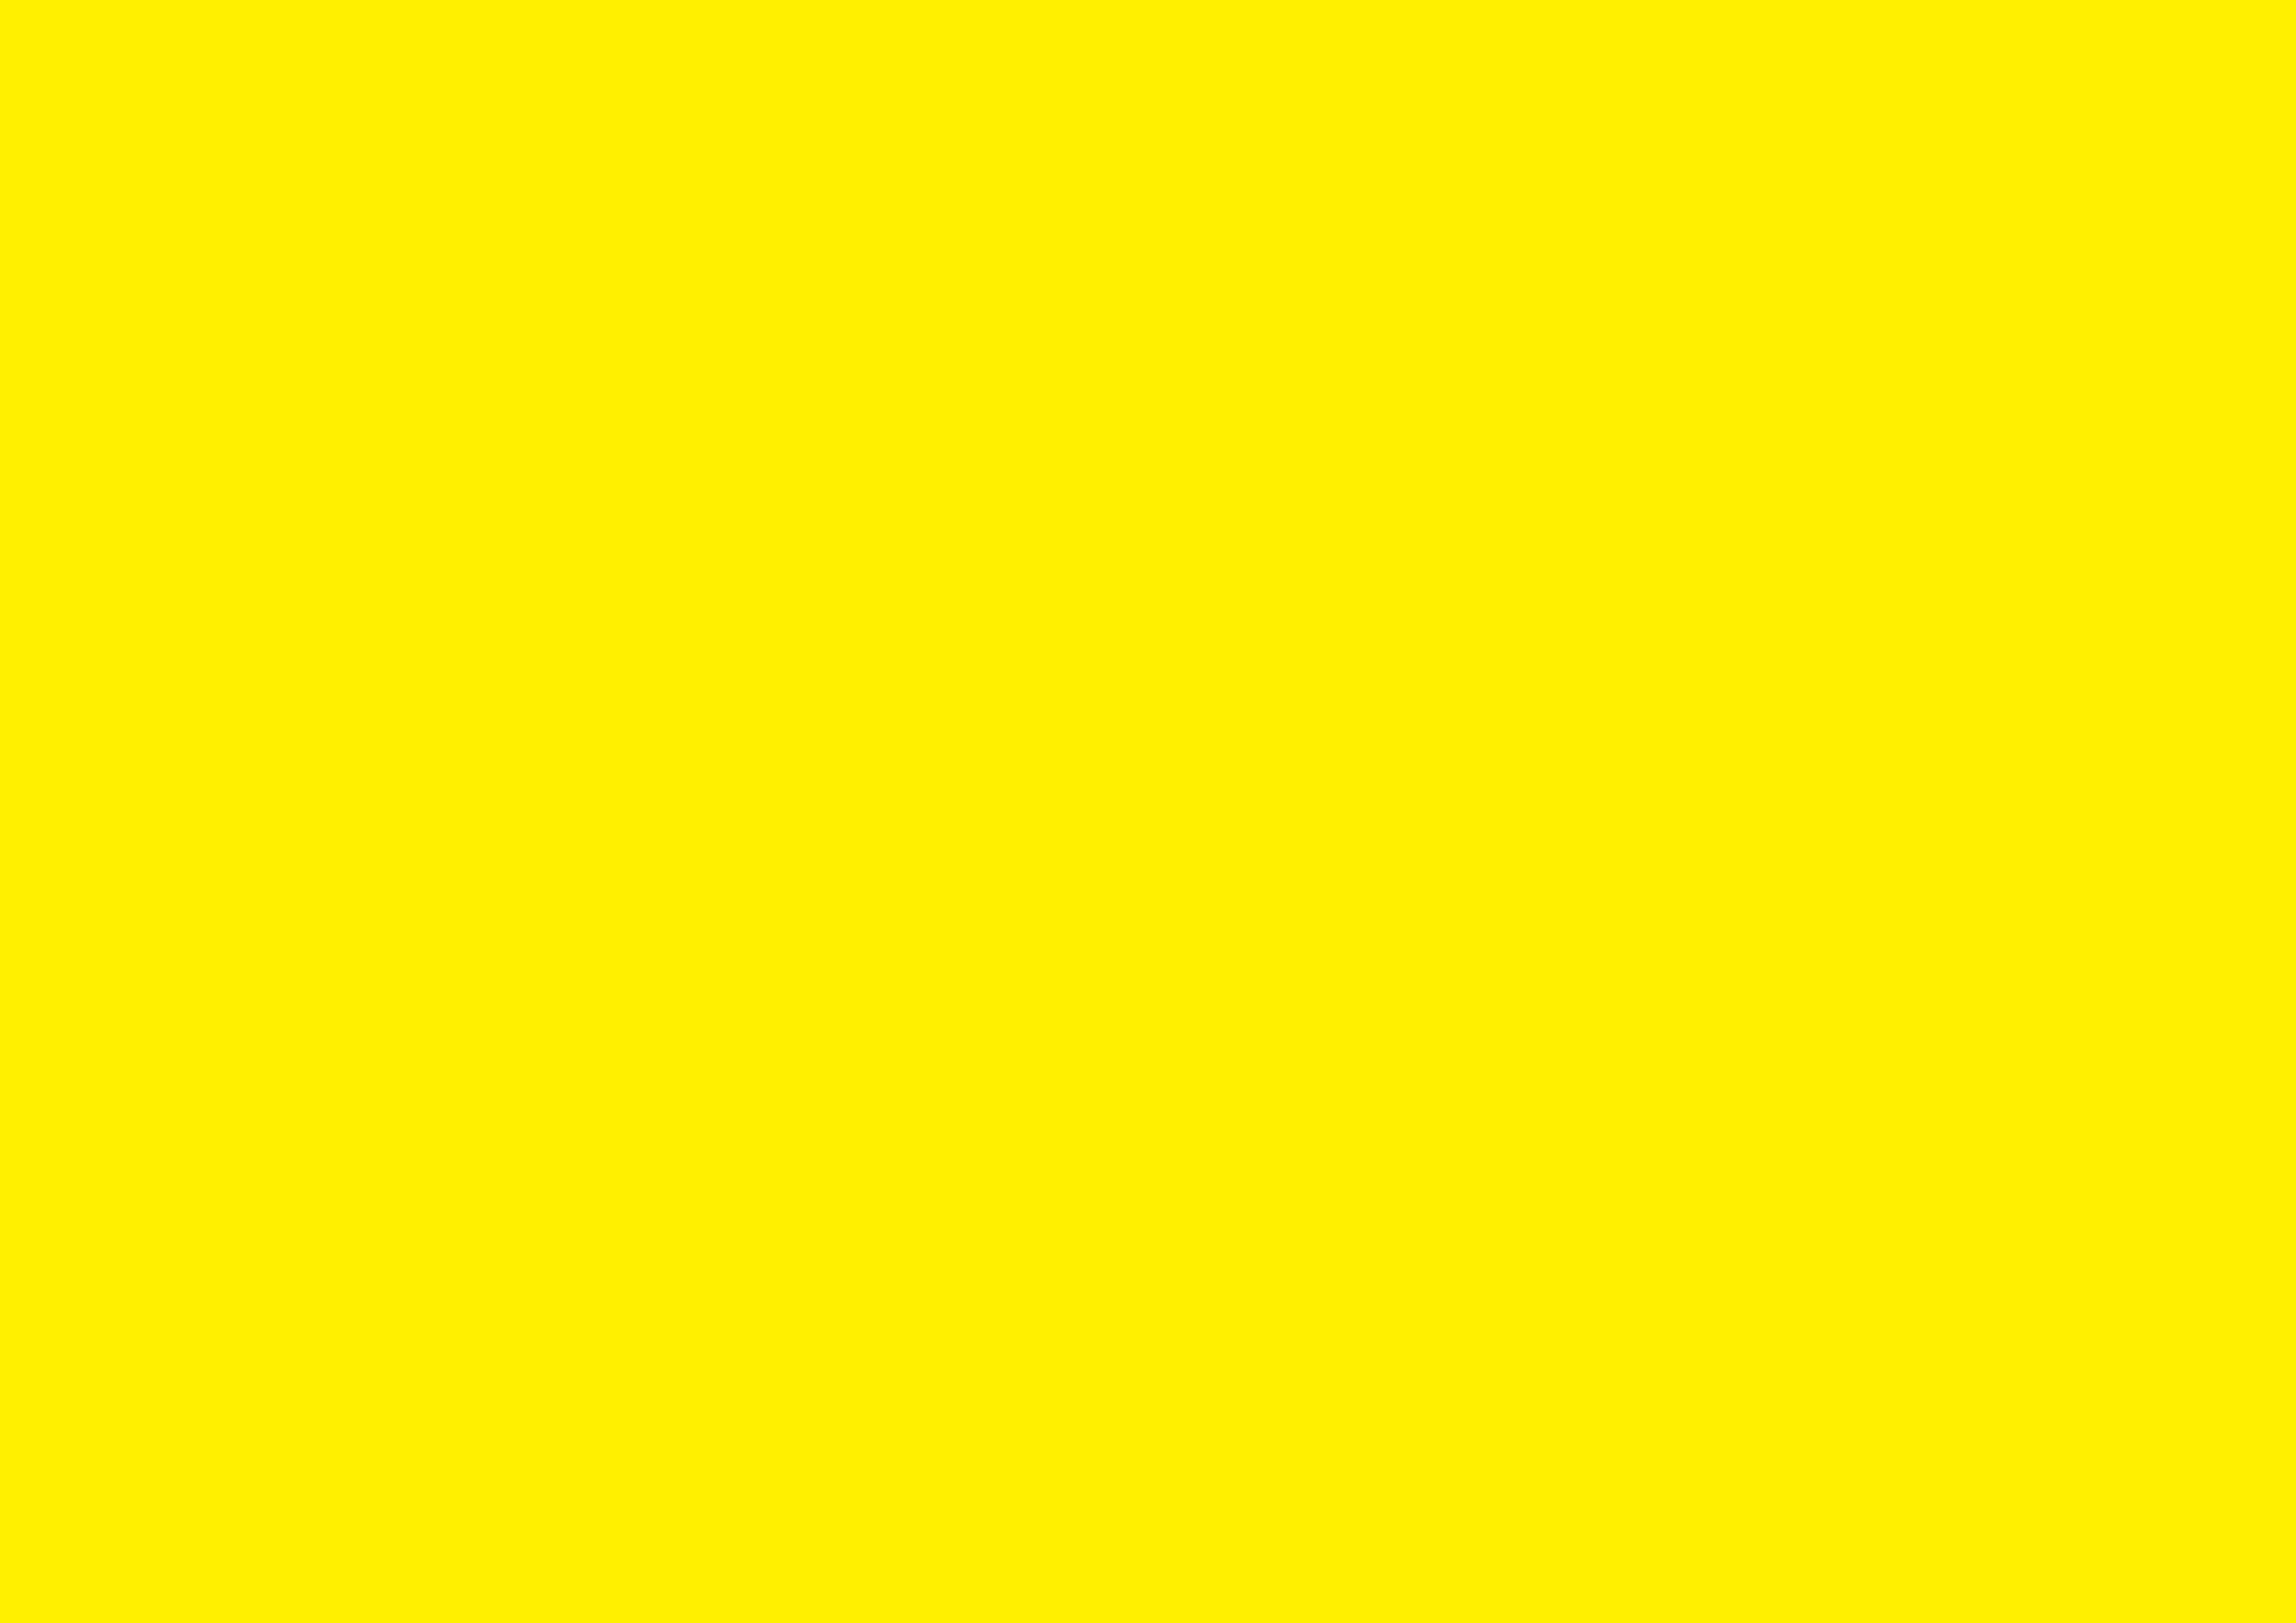 3508x2480 Yellow Rose Solid Color Background